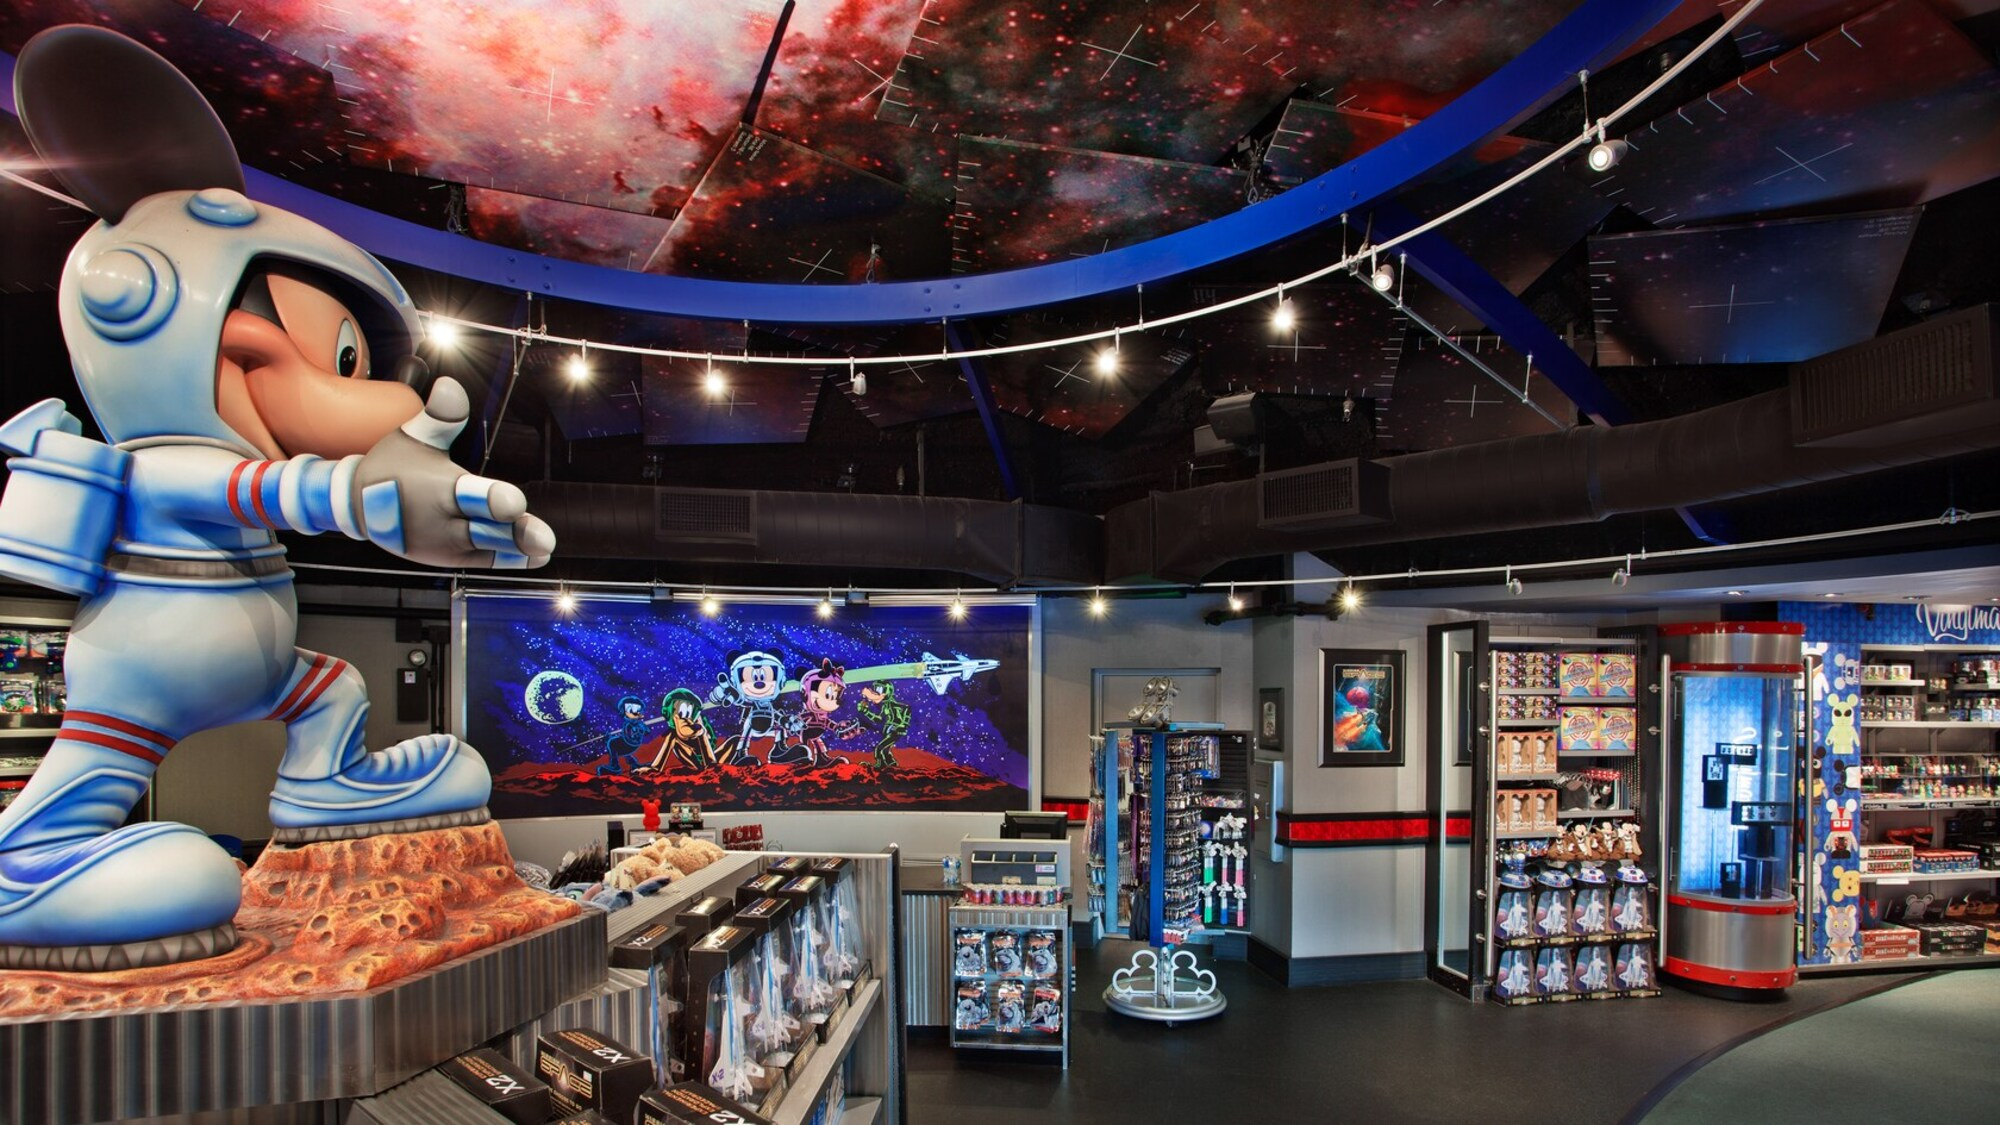 mission space cargo bay epcot